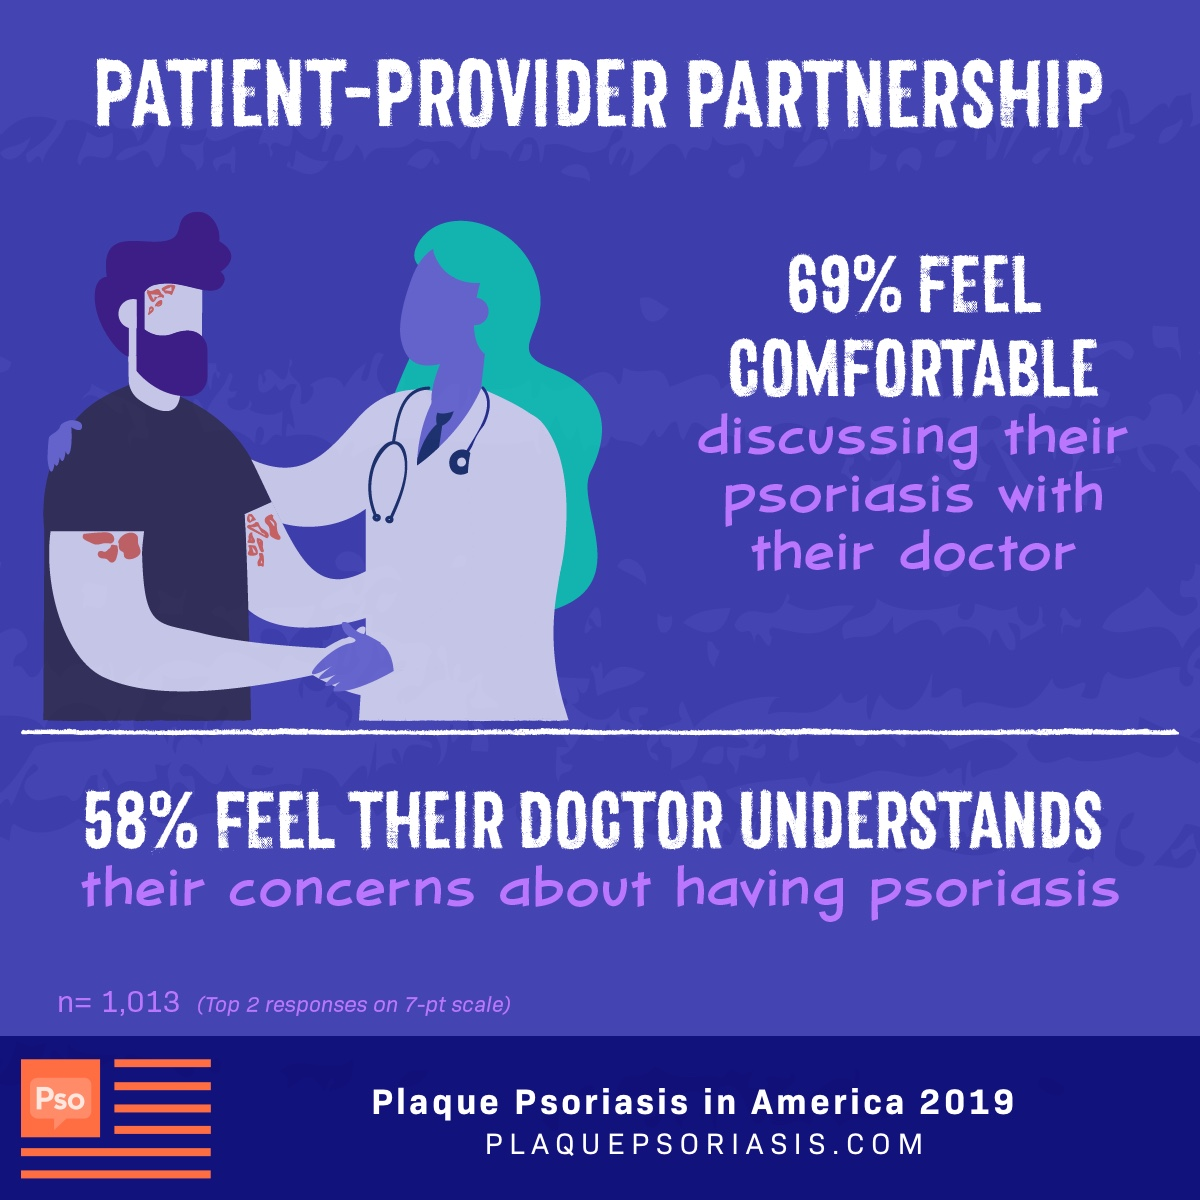 69% of patients feel comfortable discussing psoriasis with their doctor and 58% feel their doctor understands their concerns.